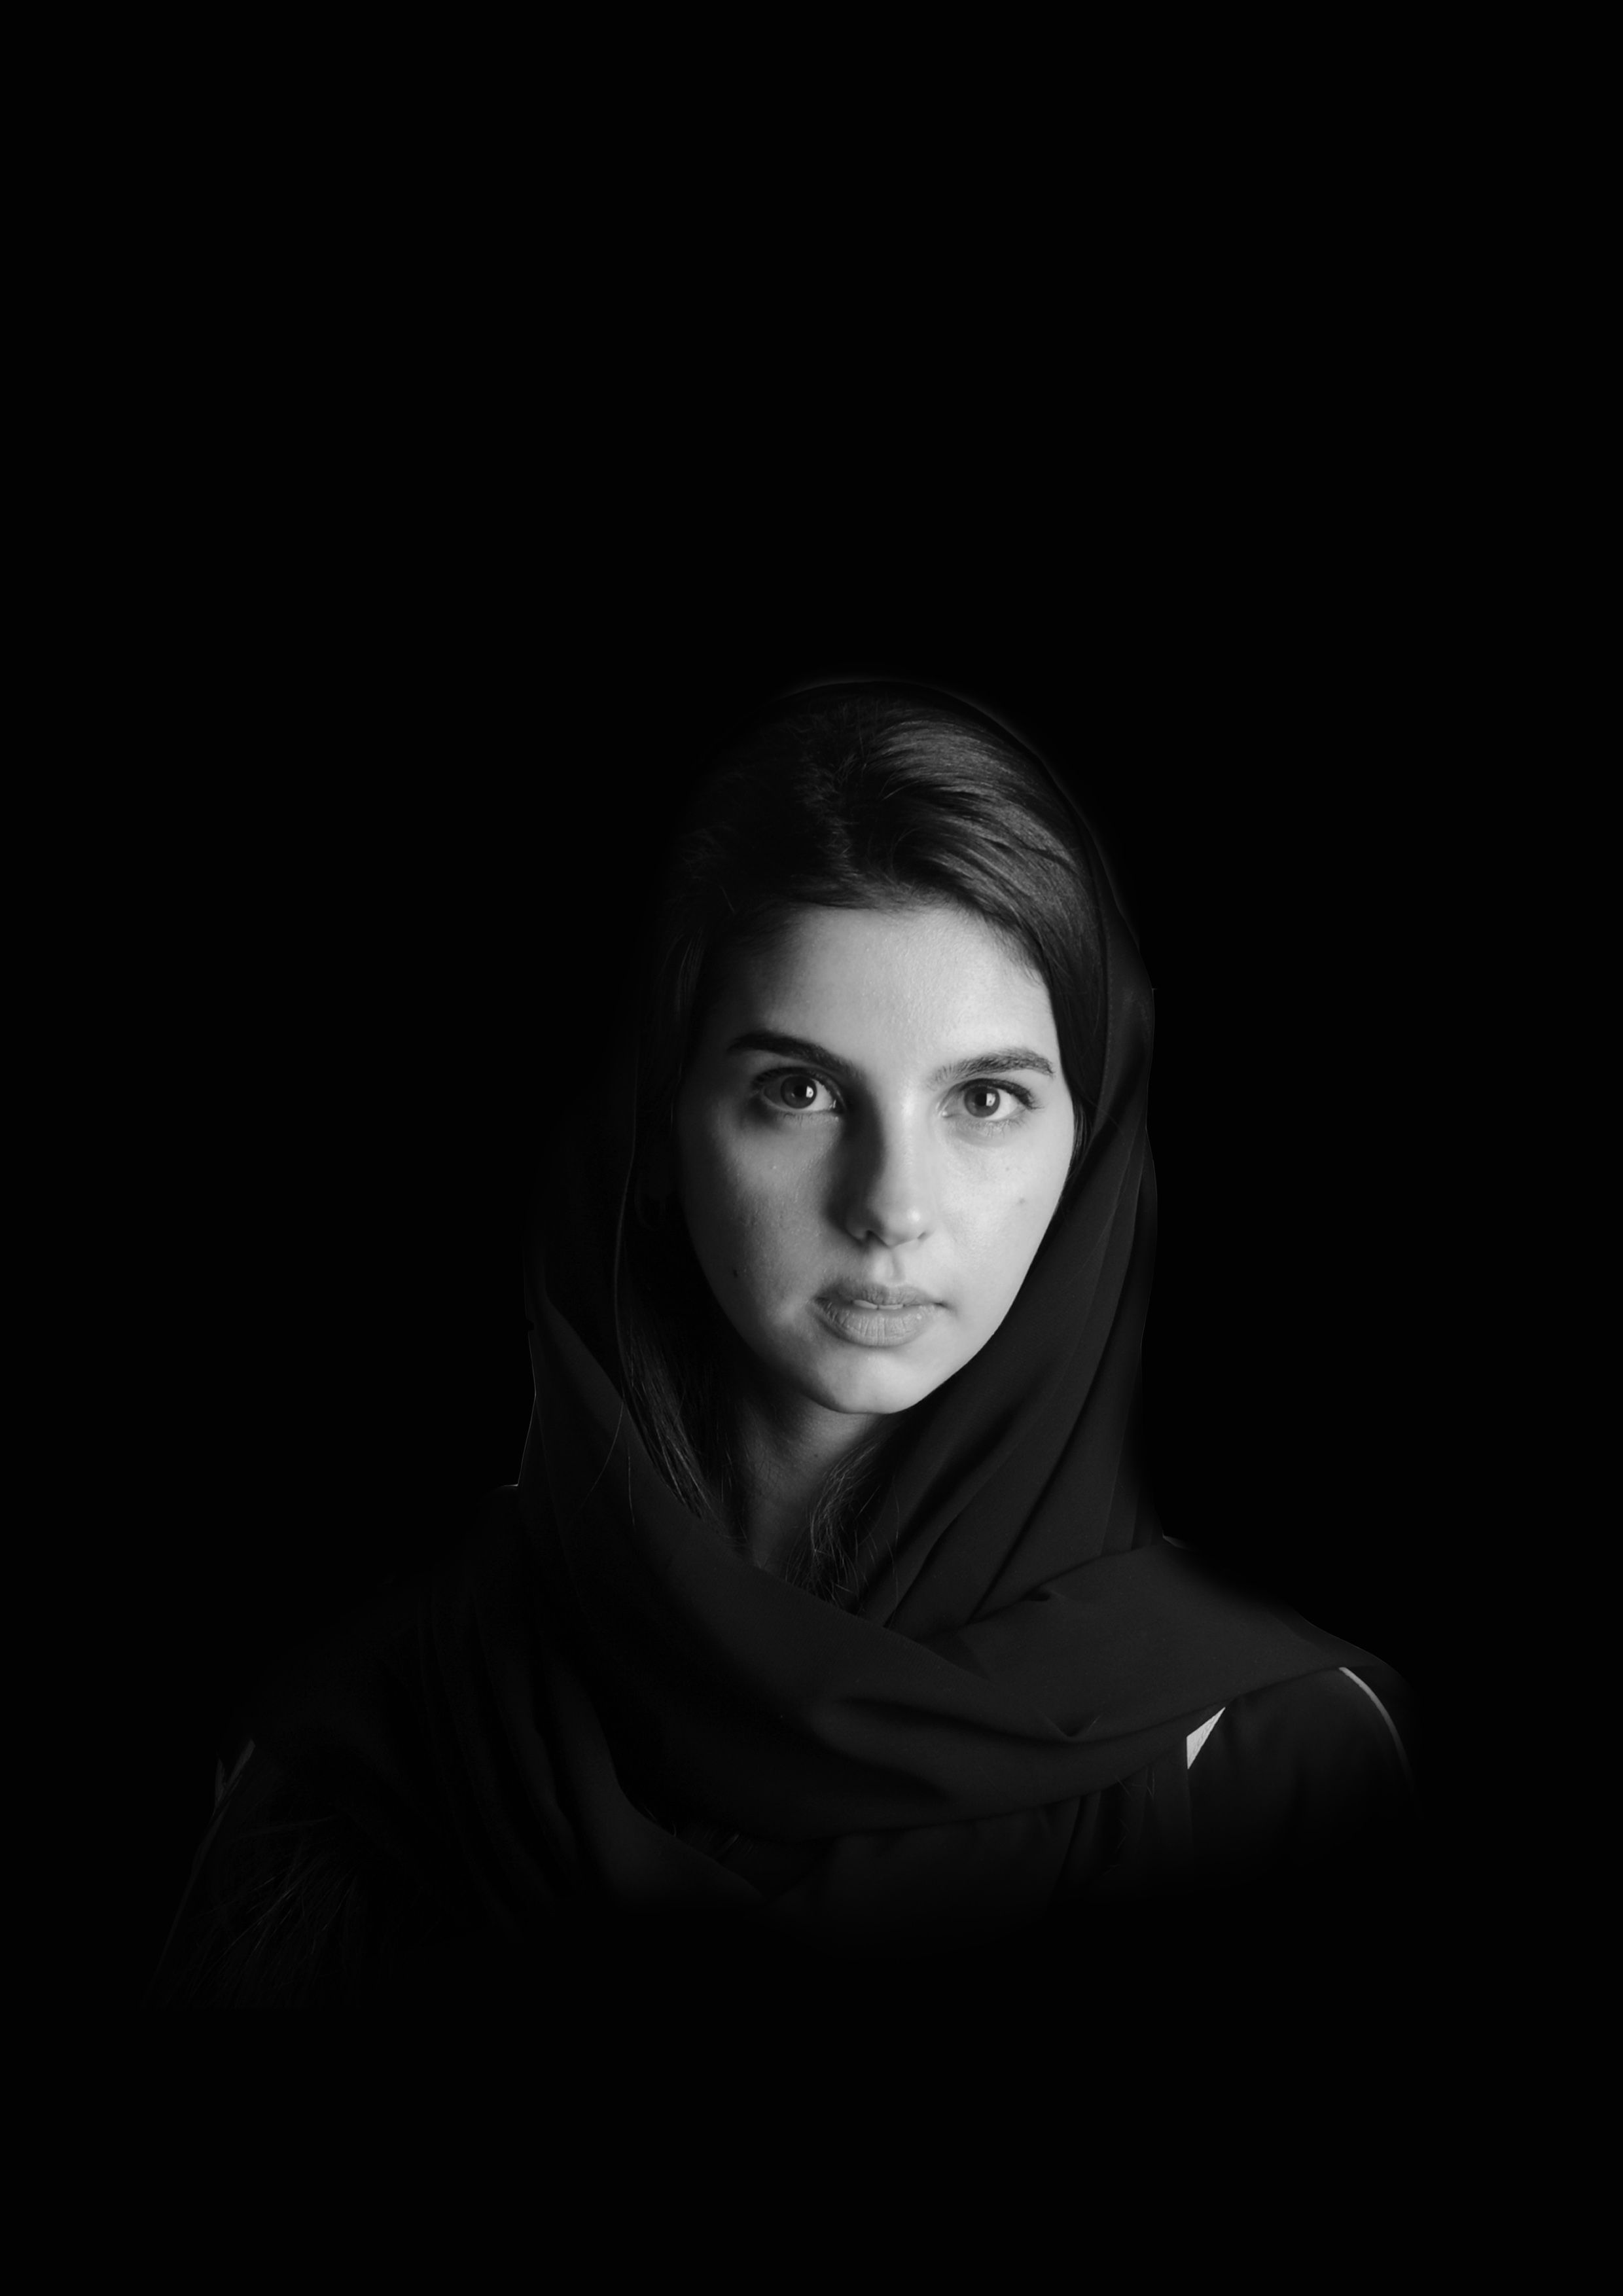 shahad alazzaz - Shahad Alazzaz, founder of Azaz Architects, was born in Riyadh, Saudi Arabia to famous journalist and photographer, Saleh Alazzaz. In 2007, Alazzaz graduated from highschool, ranking amongst the top 3 graduates in the Najd region of the kingdom. She earned a BA in Architecture from the University of Manchester and a MA in Architectural Design and Project Management from IE Business School in Madrid. Her career in the industry took off as she joined a Spanish firm as a summer intern, but was quickly appointed to manage projects she brought in from the Middle East. With a continuously growing passion for the job and unresting ambition, Alazzaz is responsible for projects that span from residential spaces to massive judicial projects. The Architect's new venture is described as a continuation of the design process, but with a different philosophy.